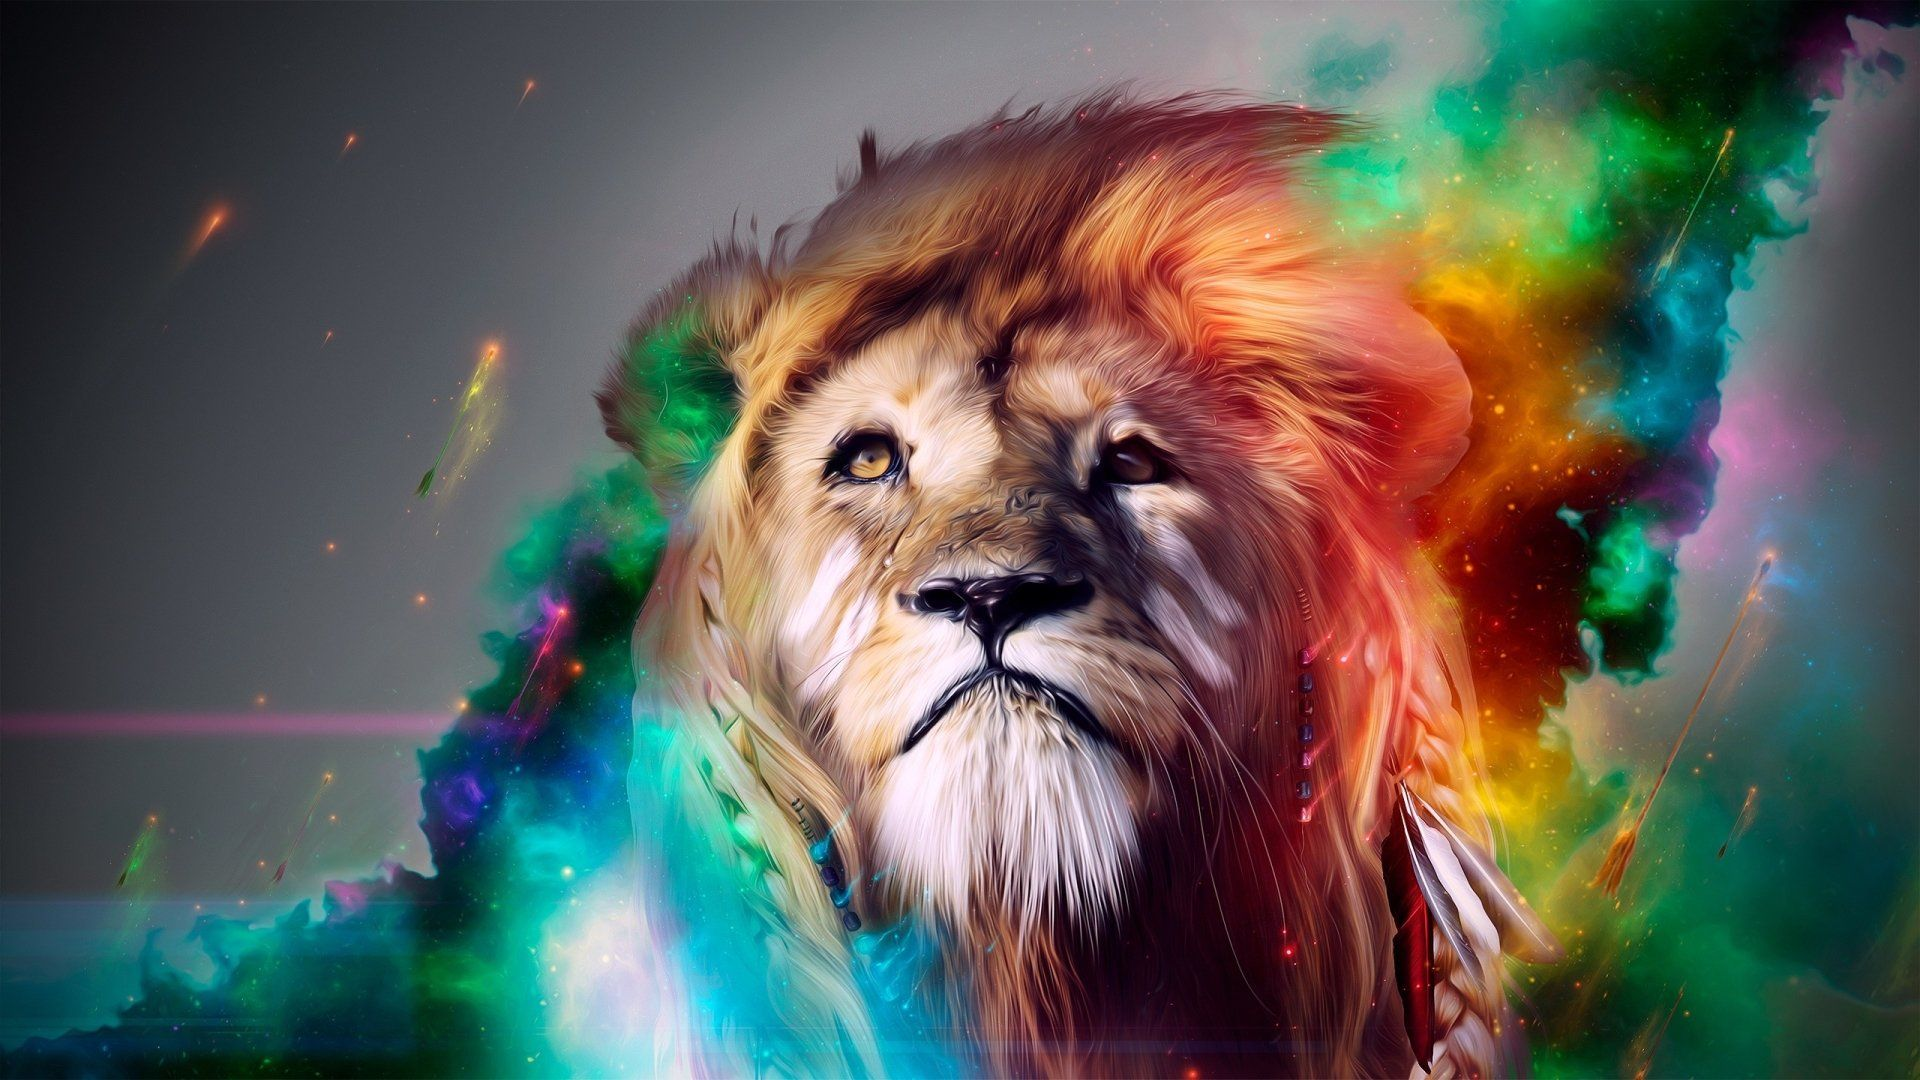 Lion Art HD Wallpaper